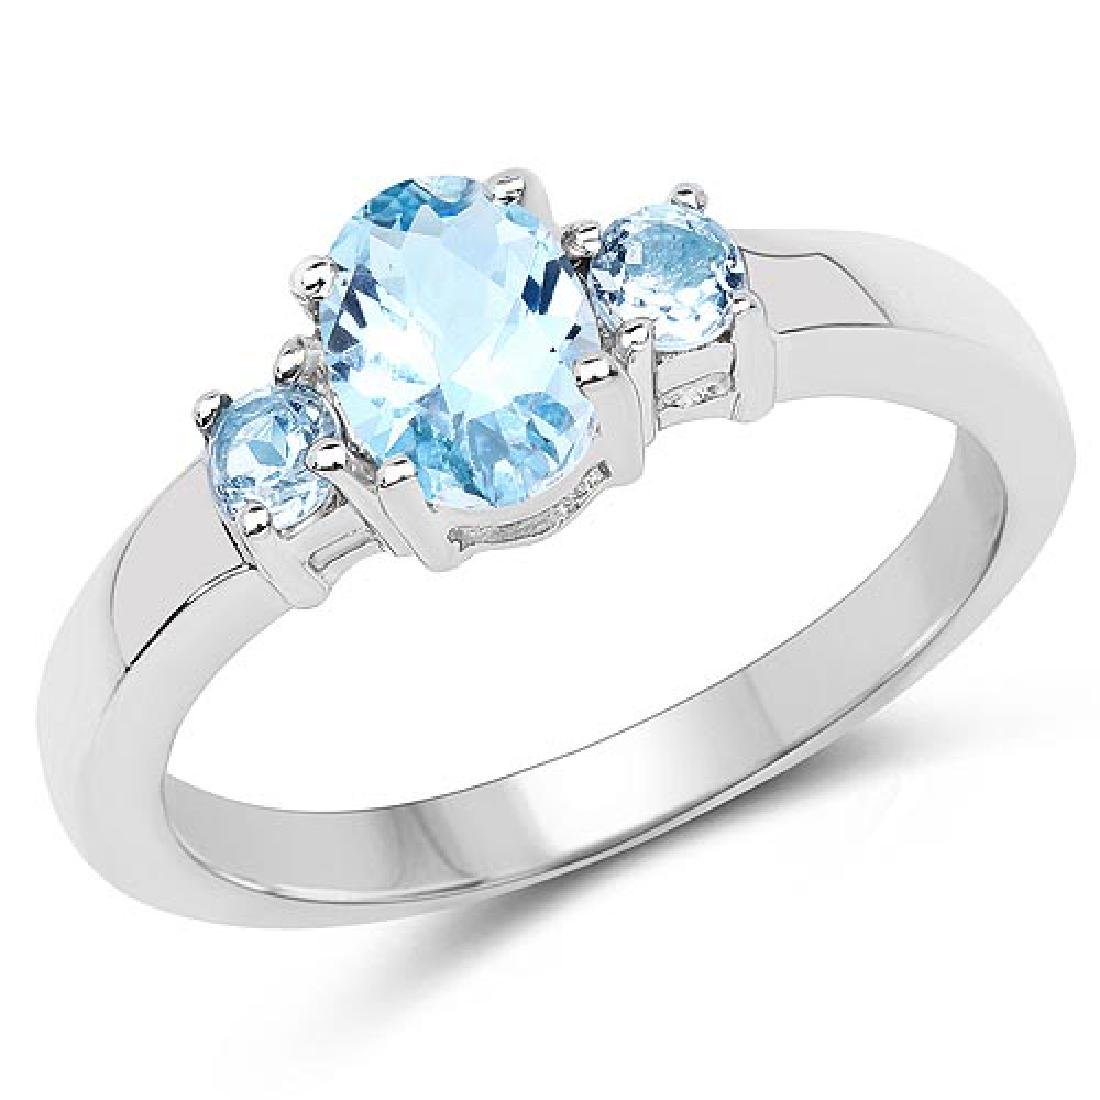 1.19 Carat Genuine Blue Topaz .925 Sterling Silver Ring